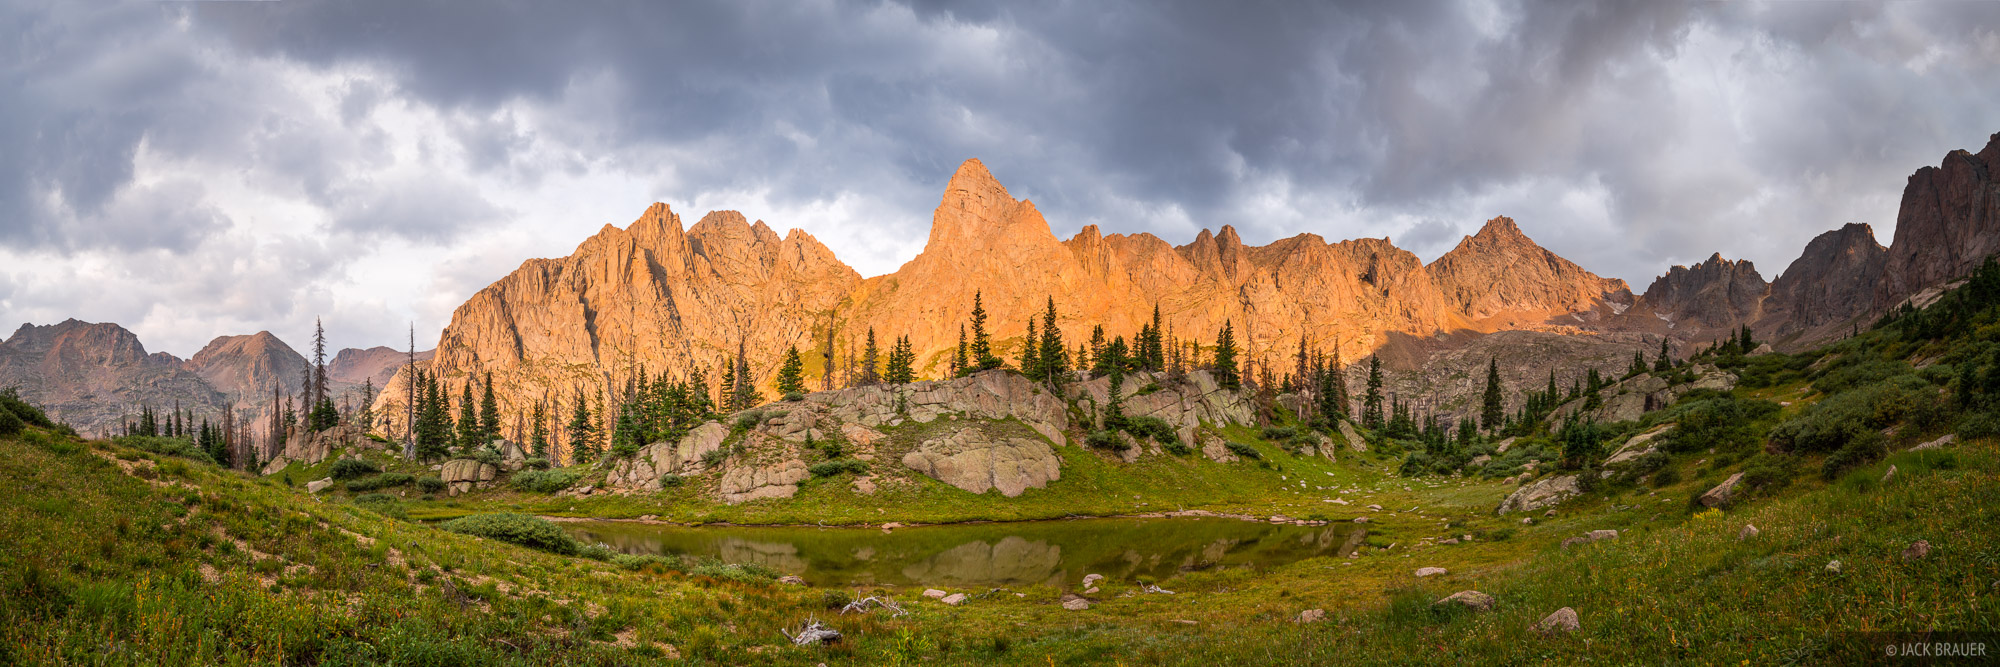 Colorado, Knife Point, Needle Mountains, San Juan Mountains, Sunlight Peak, Weminuche Wilderness, 14er, panorama, sunset, photo